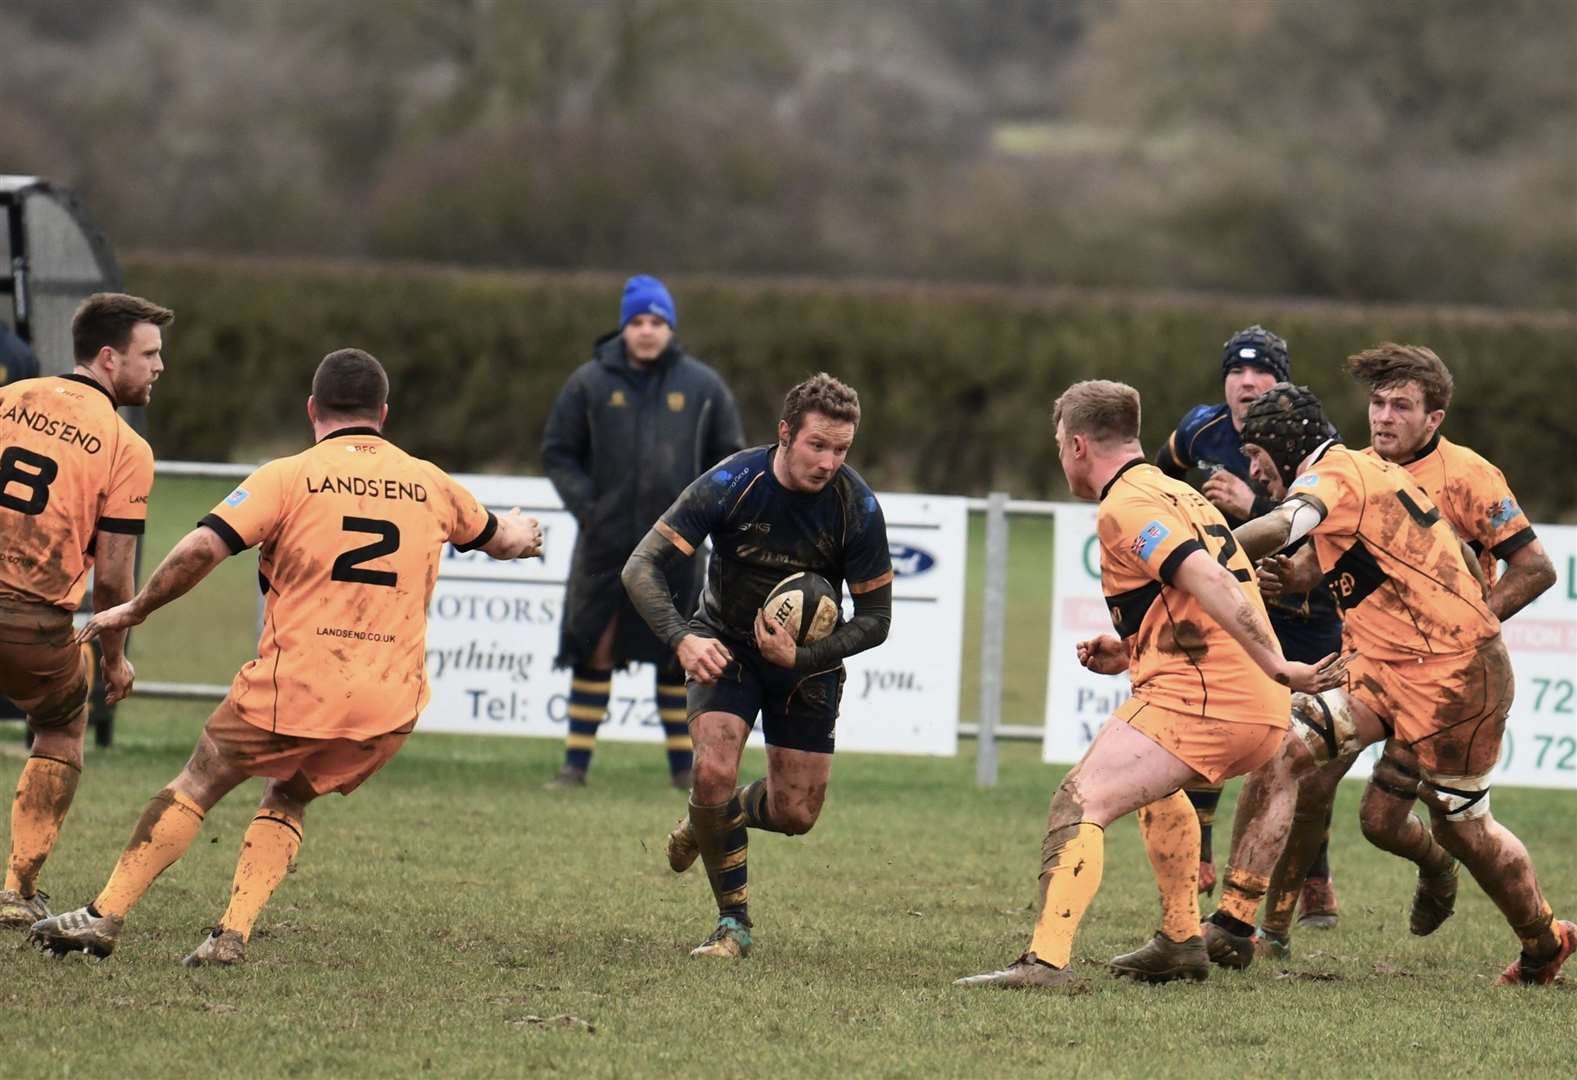 RUGBY UNION: Bourne give Oakham too much of a head start in top of the table clash